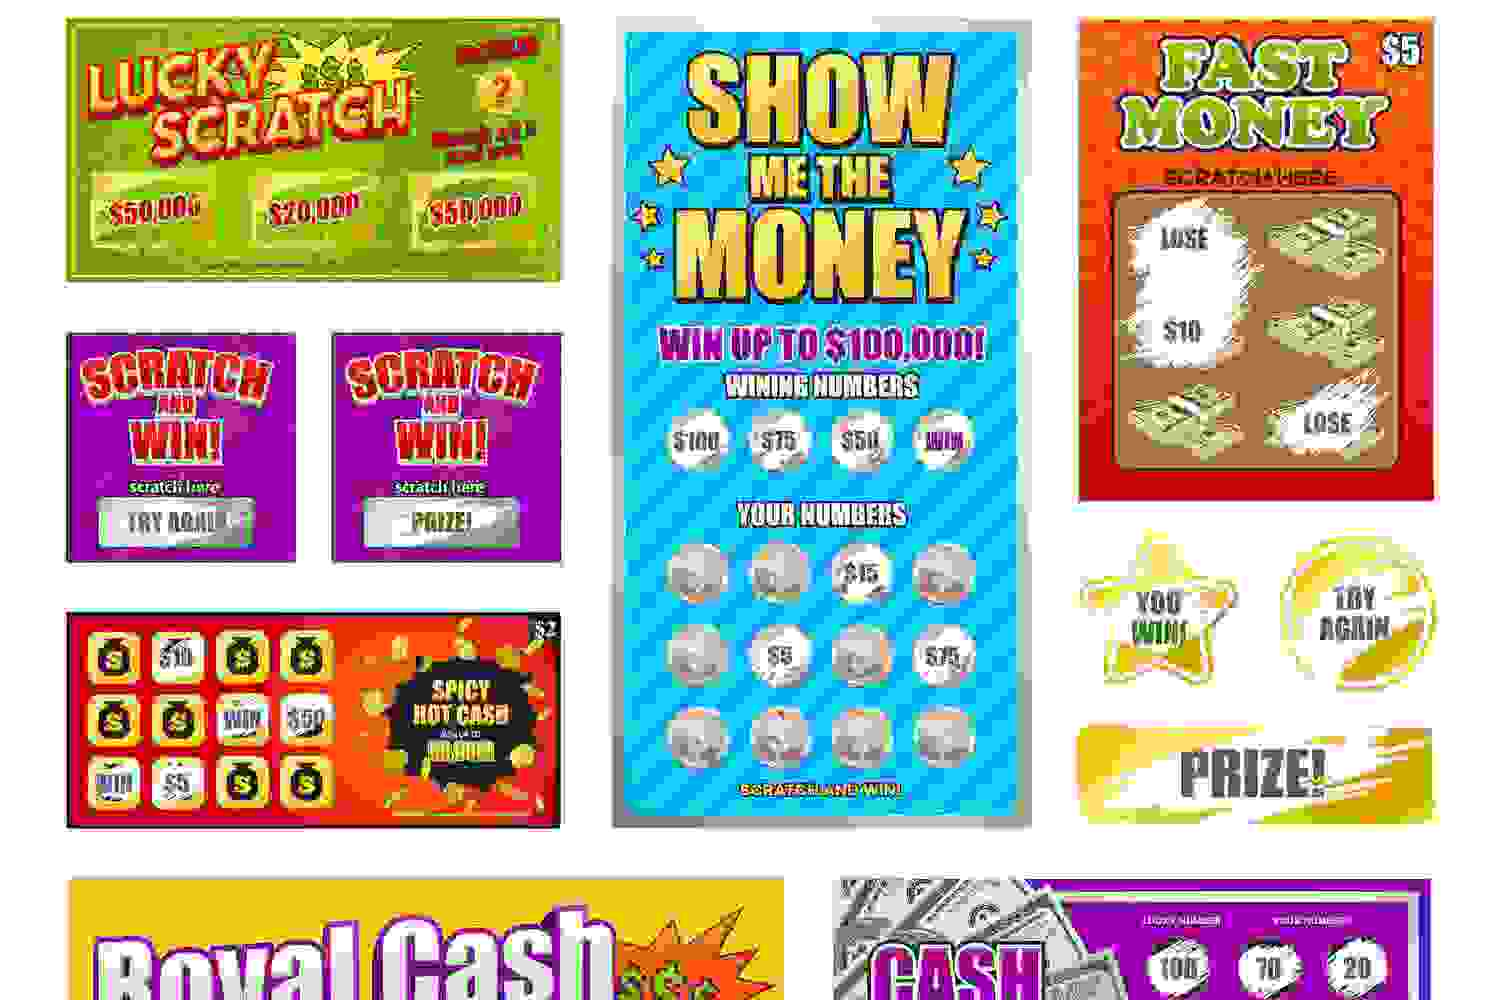 Depictions of lottery scratch tickets.